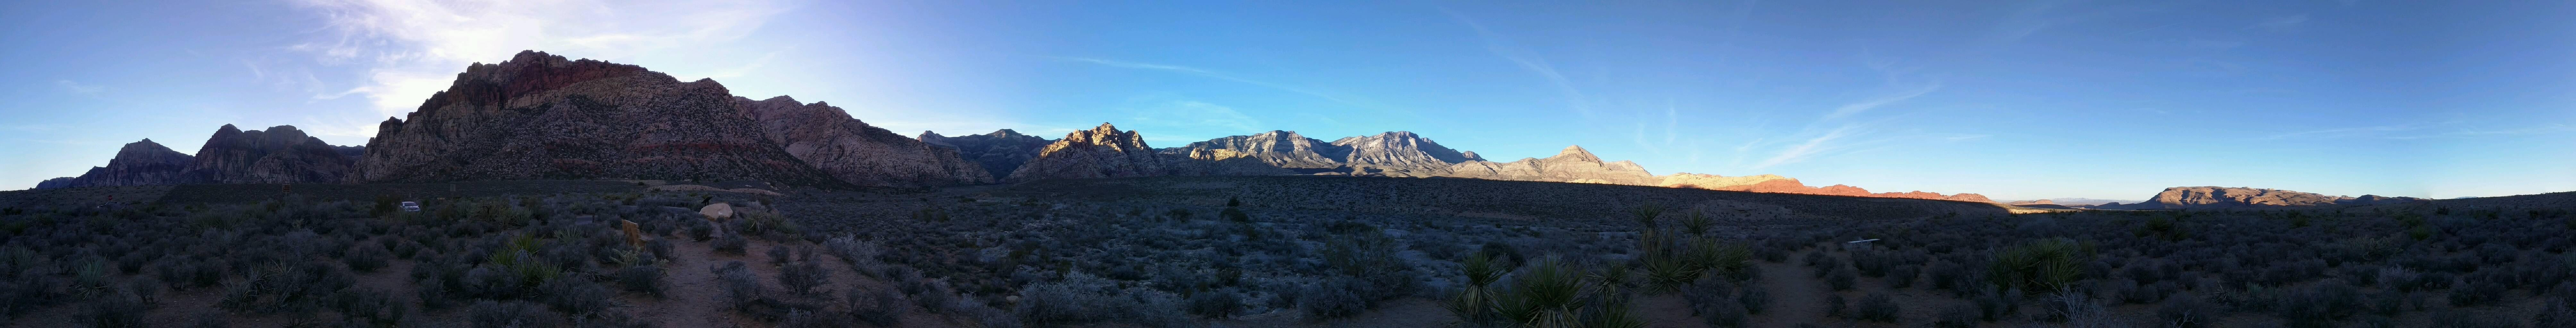 Costa en Red Rock Canyon National Conservation Area